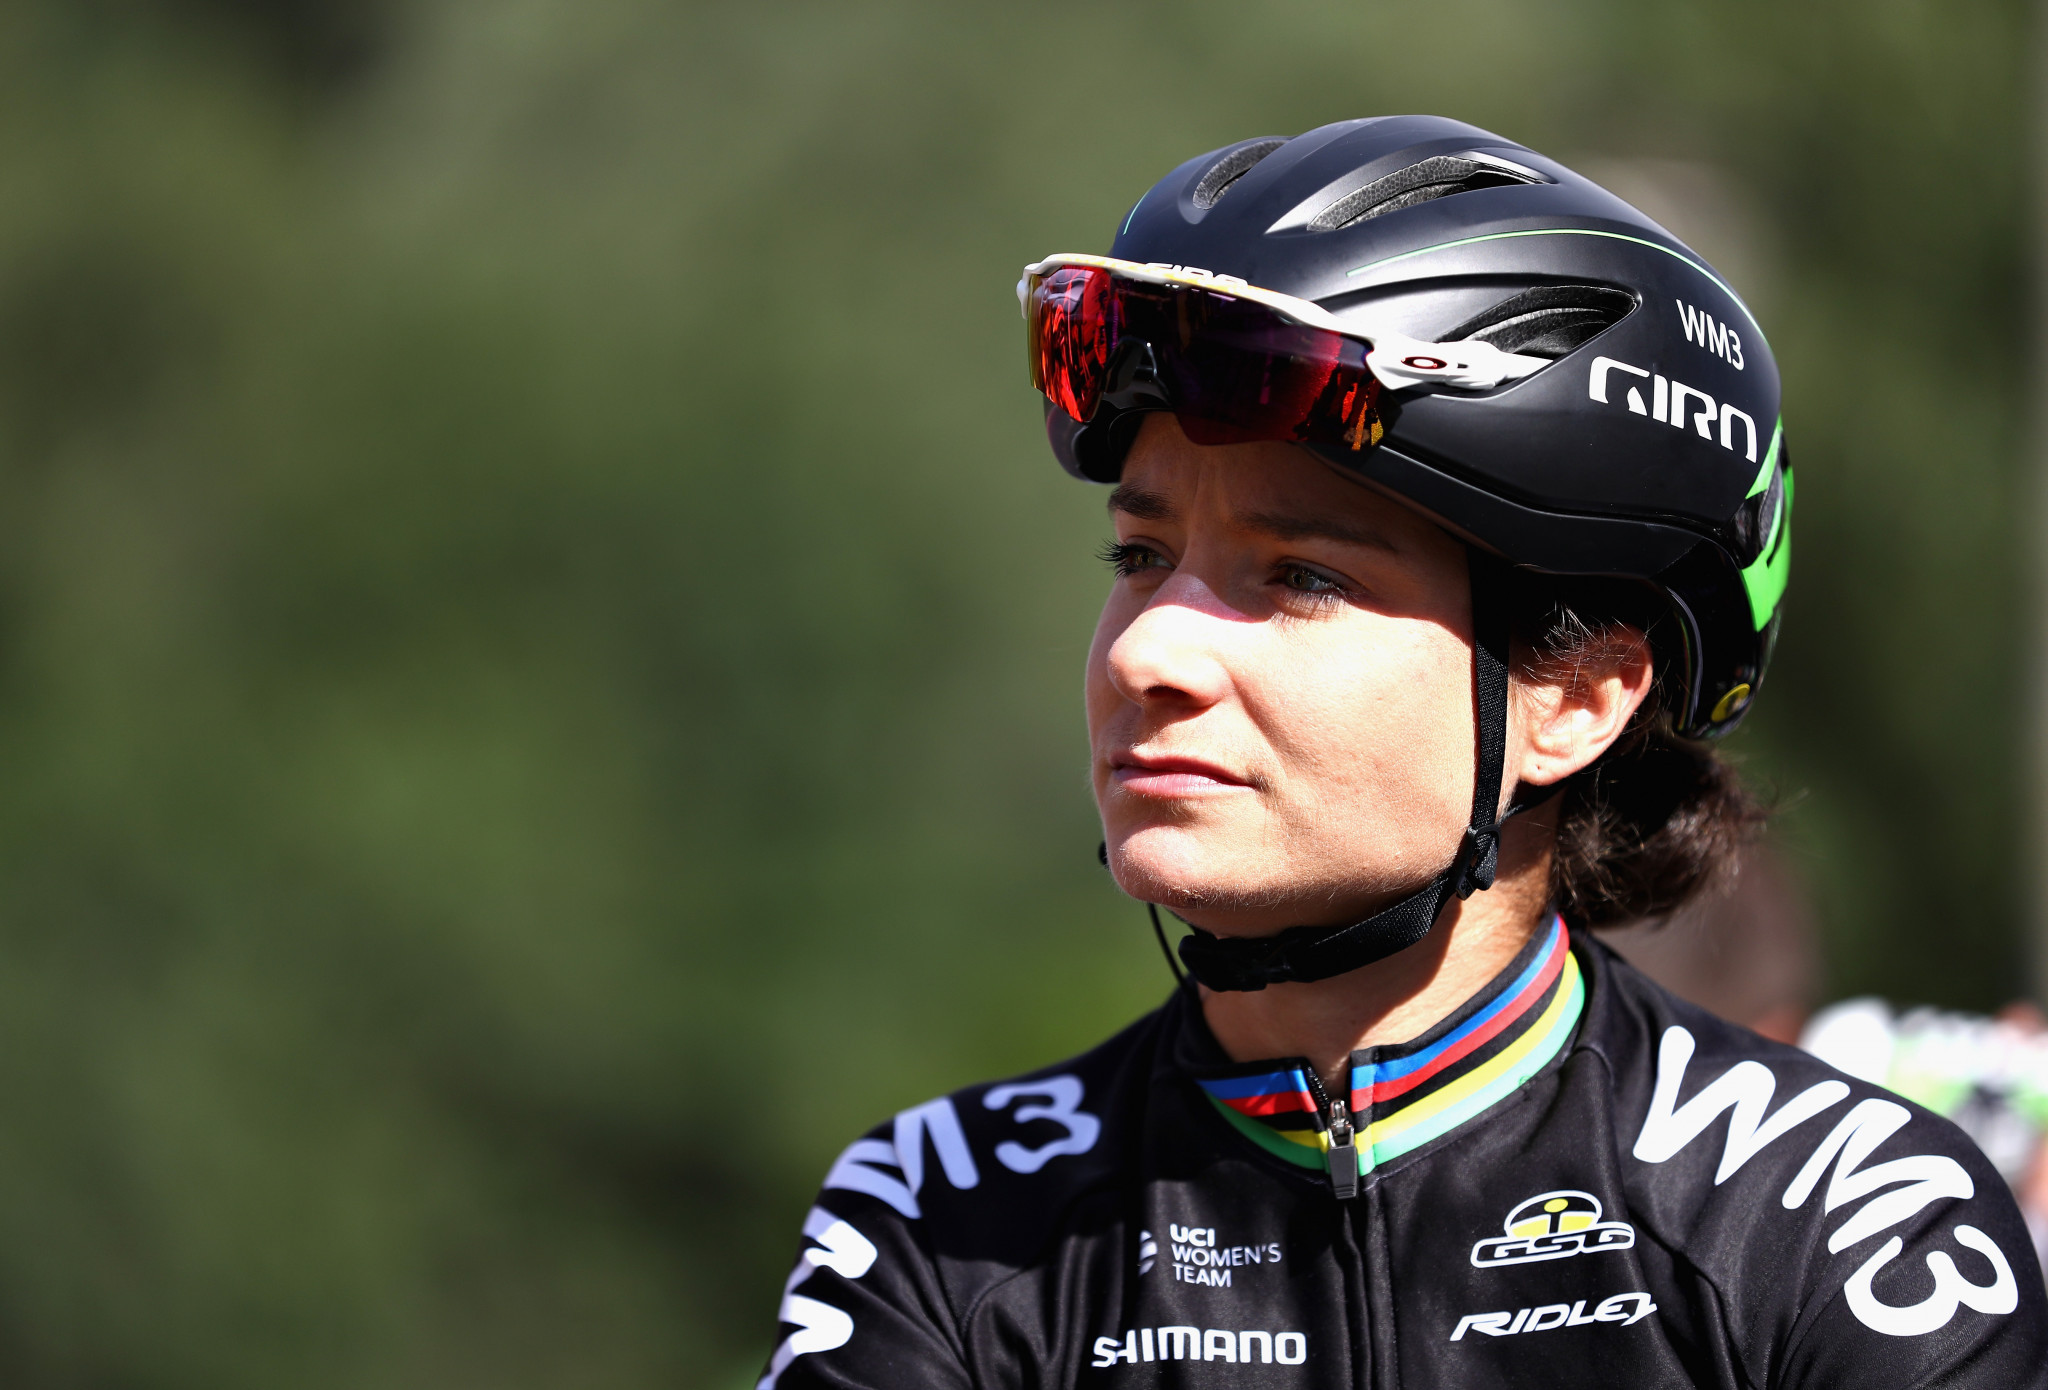 Vos out of Ovo Energy Women's Tour as D'hoore earns second stage win